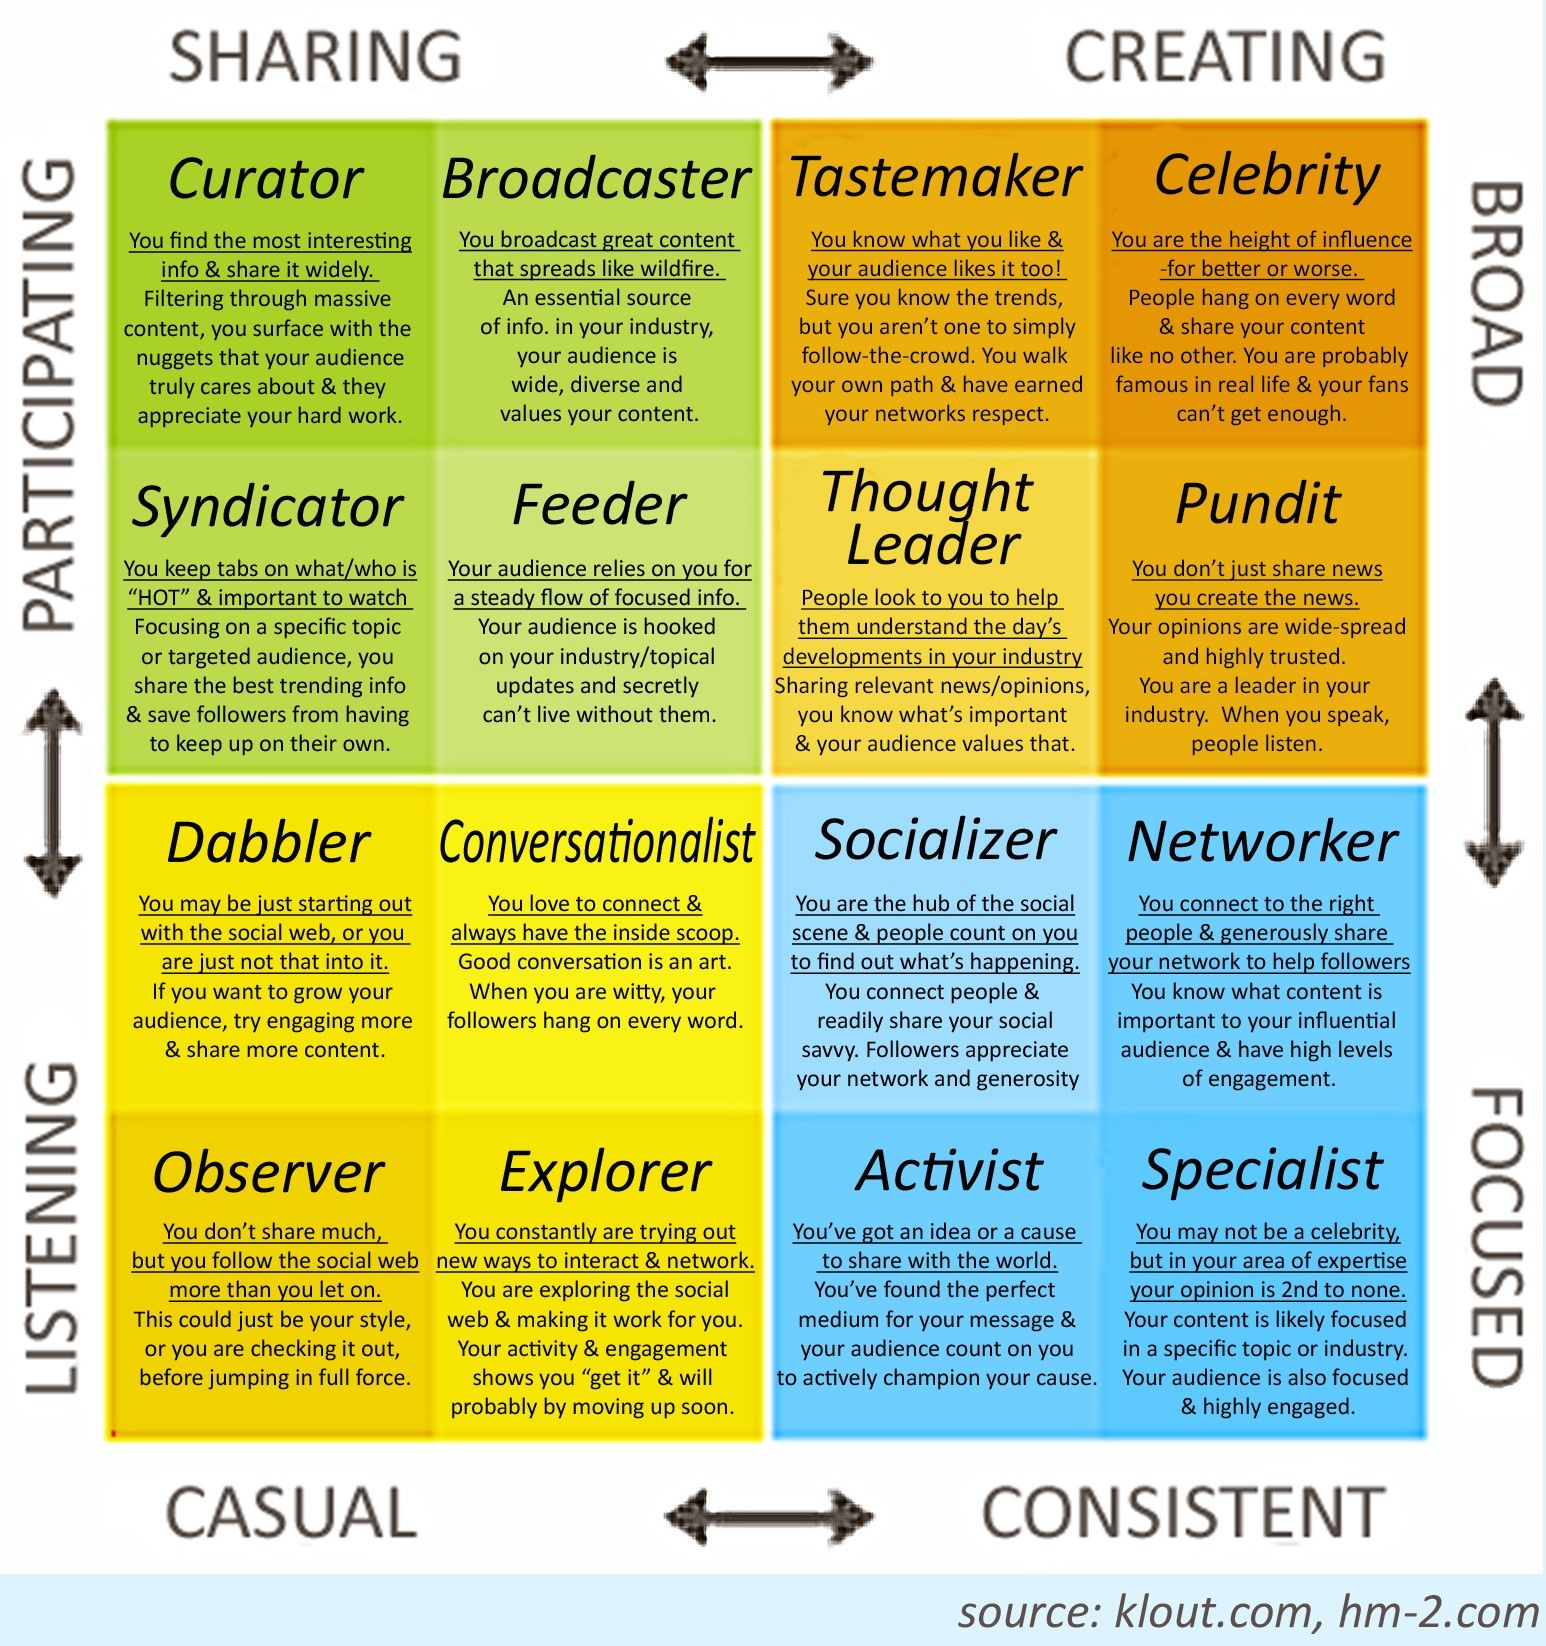 KloutS Influence Matrix  Klout Uses Social Media To Assess How